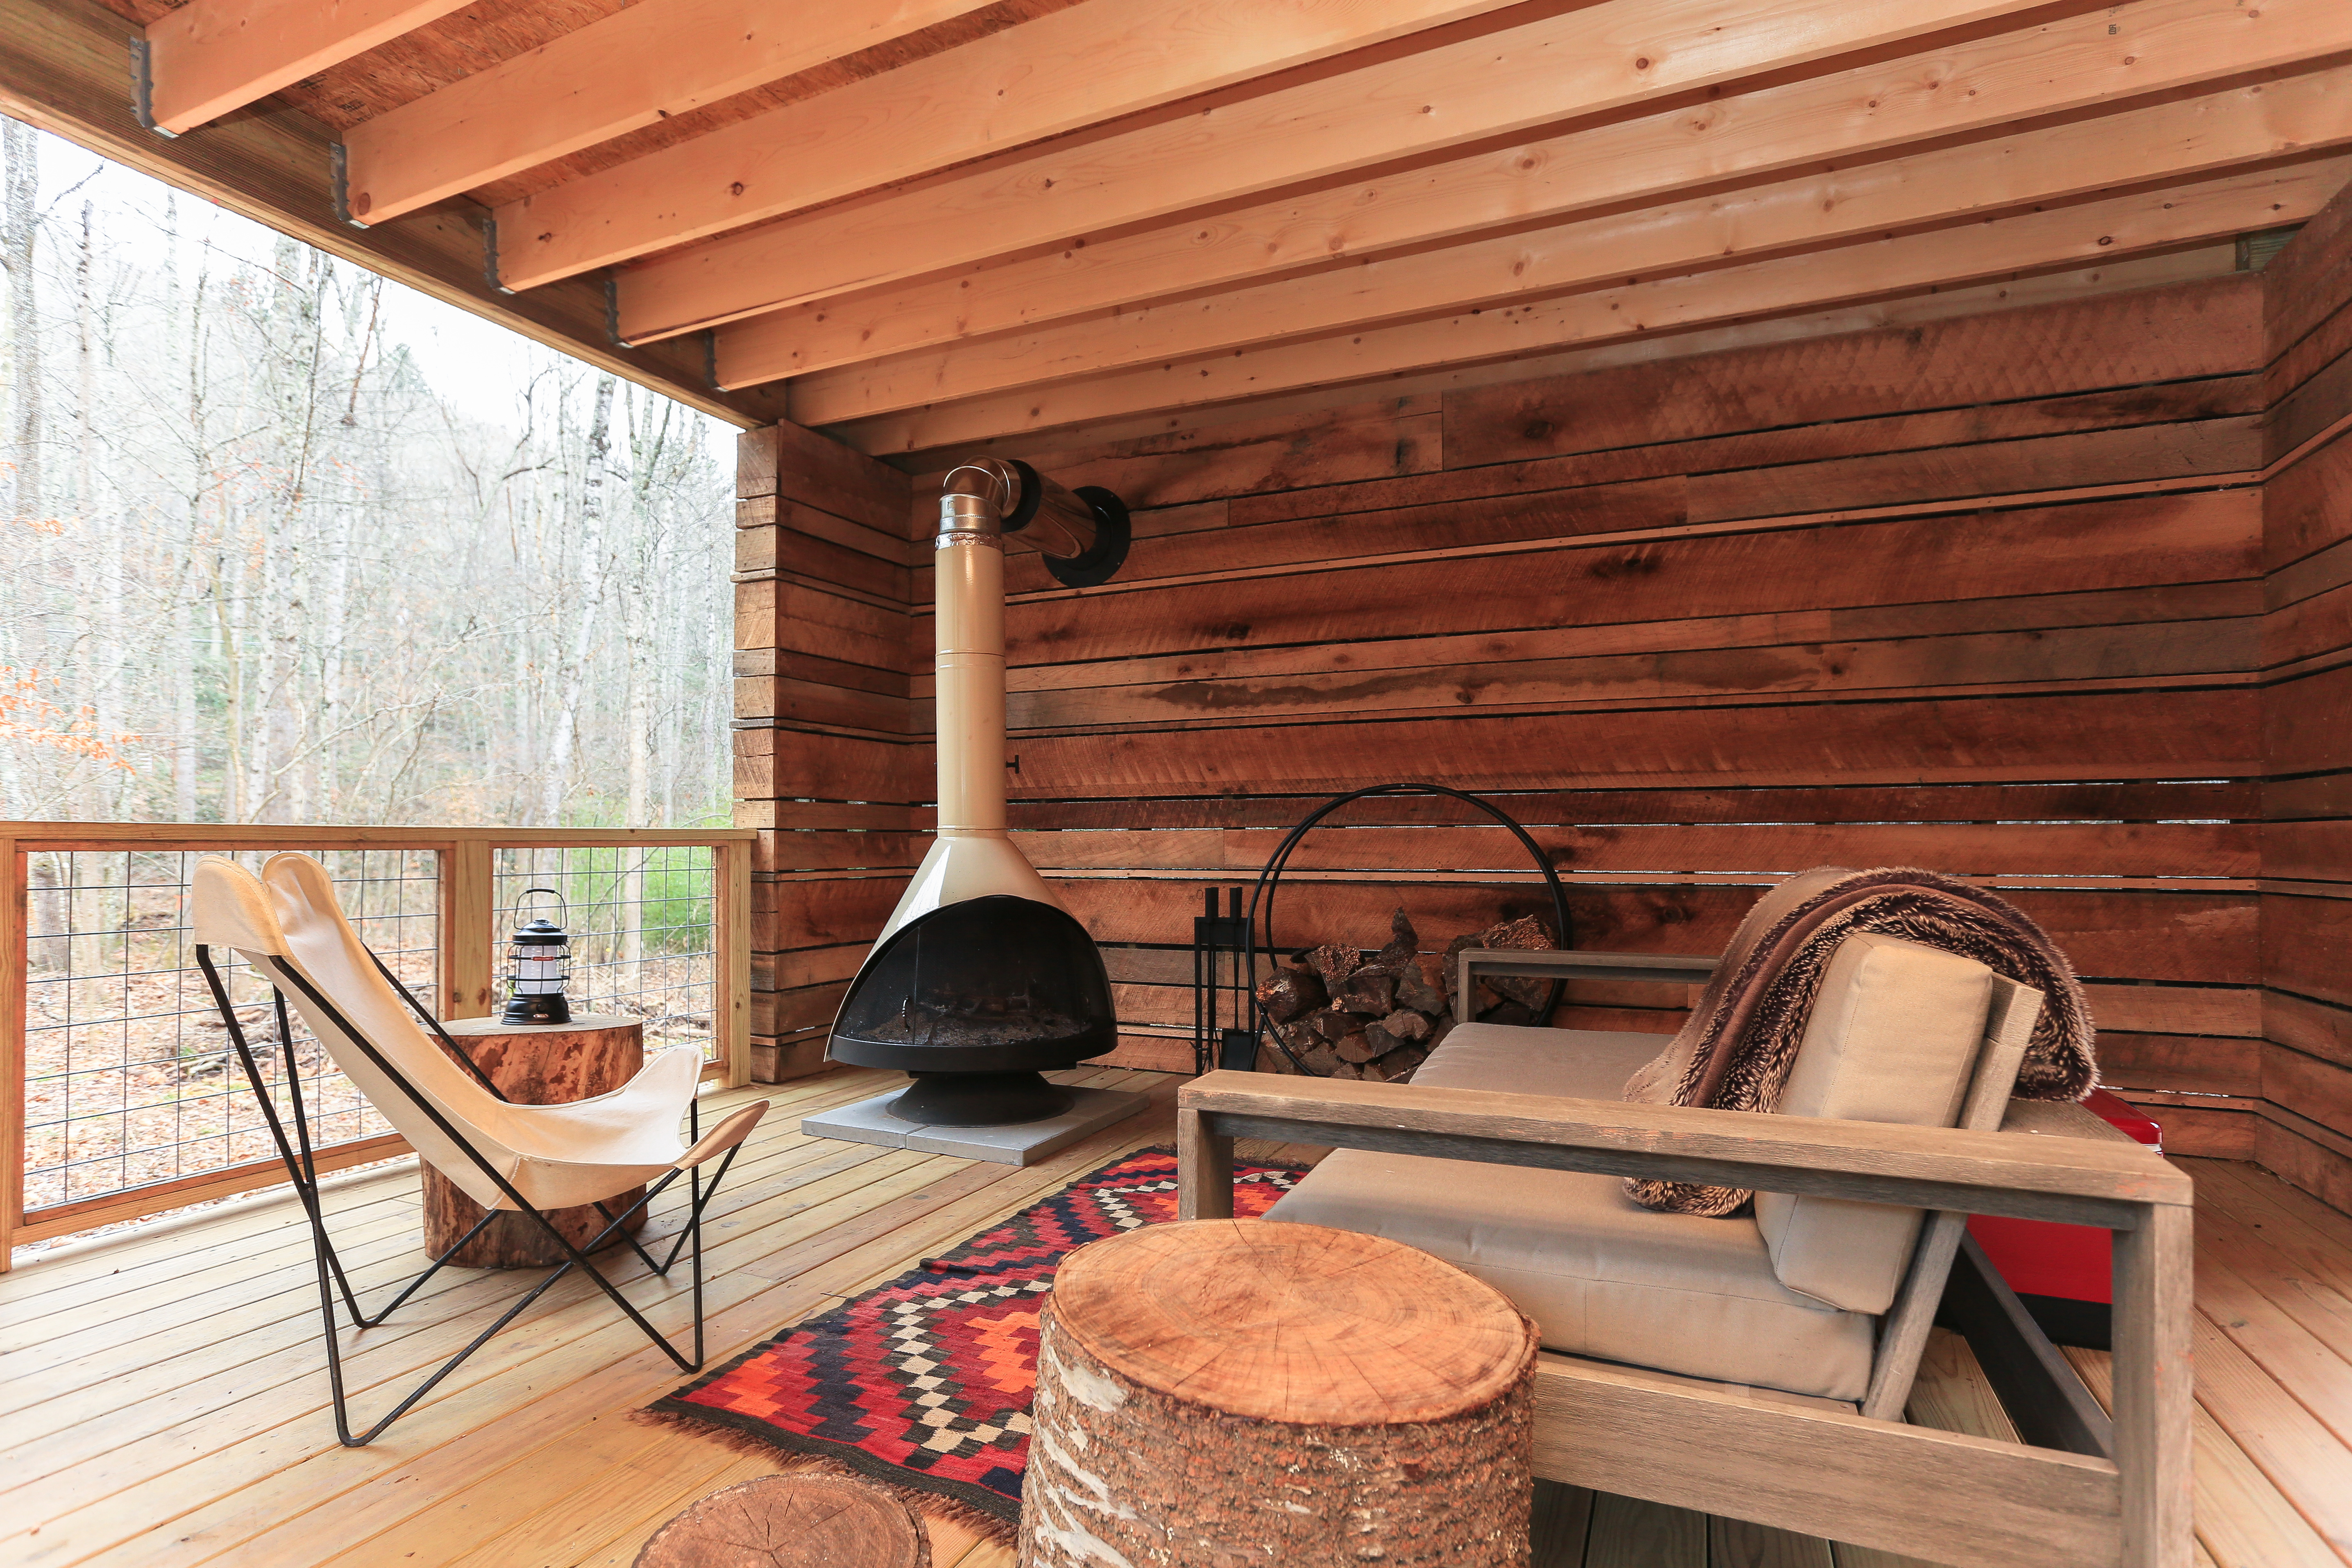 New Rustic Modern Cabins or Award-Winning Downtown Bungalow - Home ...